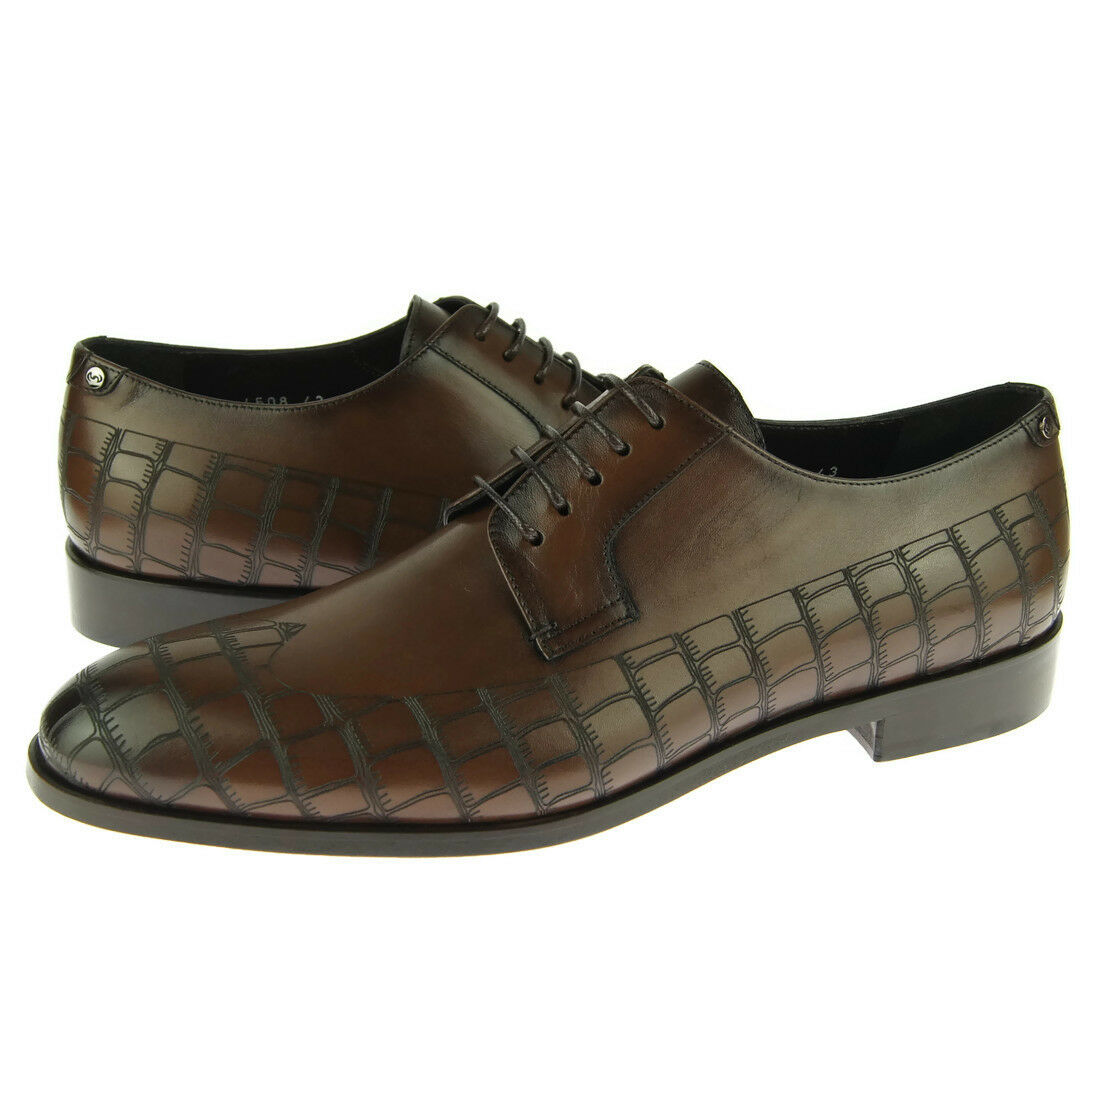 Corrente 4508 Crocodile Print Derby, Men's Lace-up Oxford Shoes, Brown